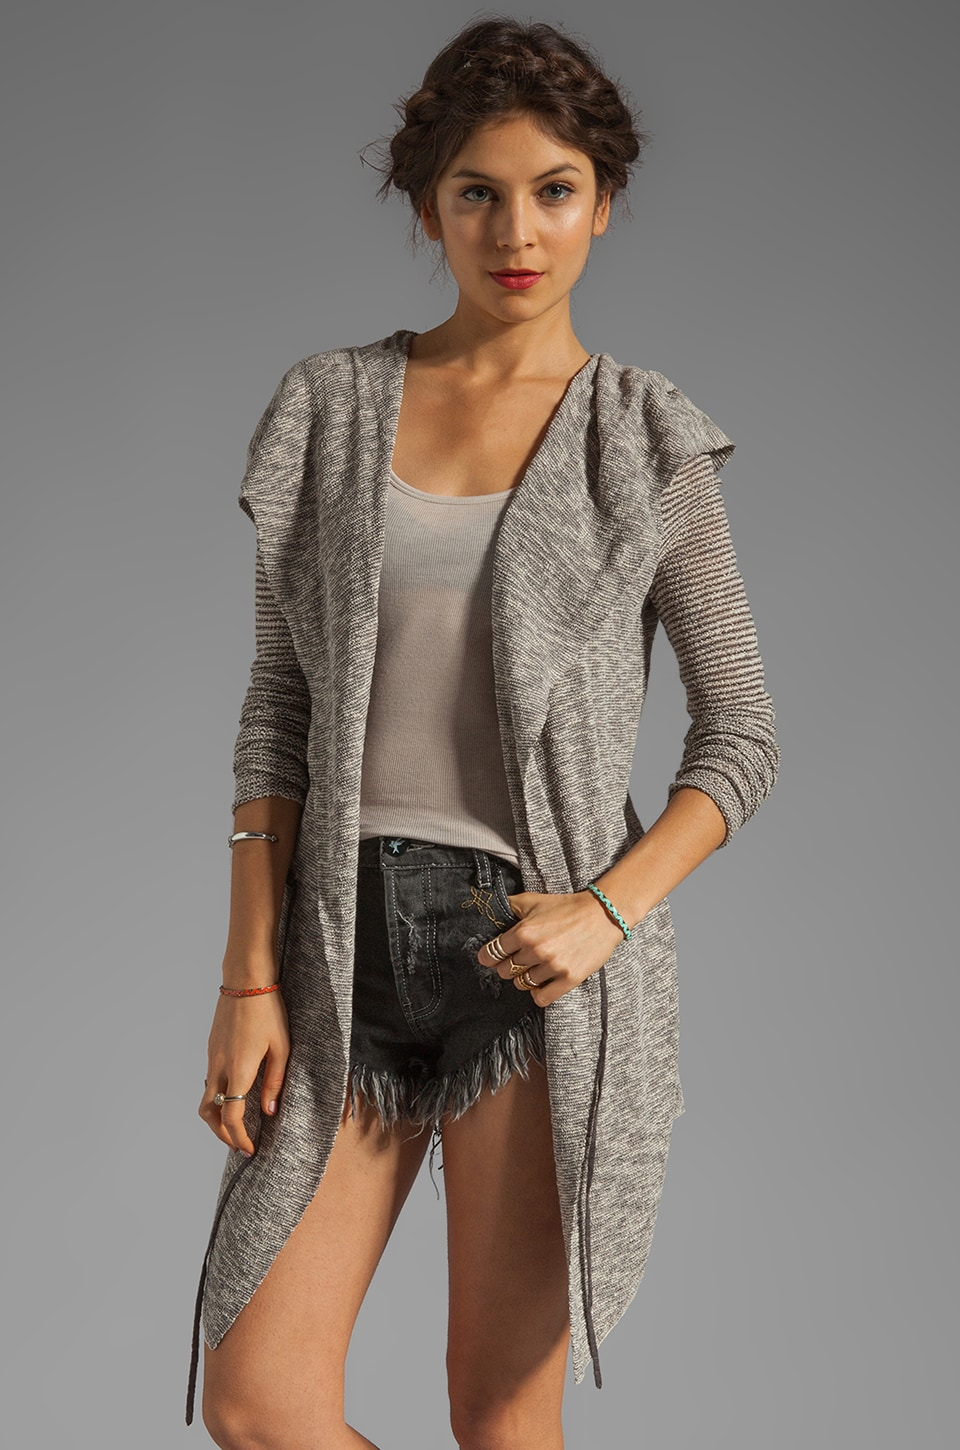 Free People For Keeps Cardi in Salt & Pepper Combo